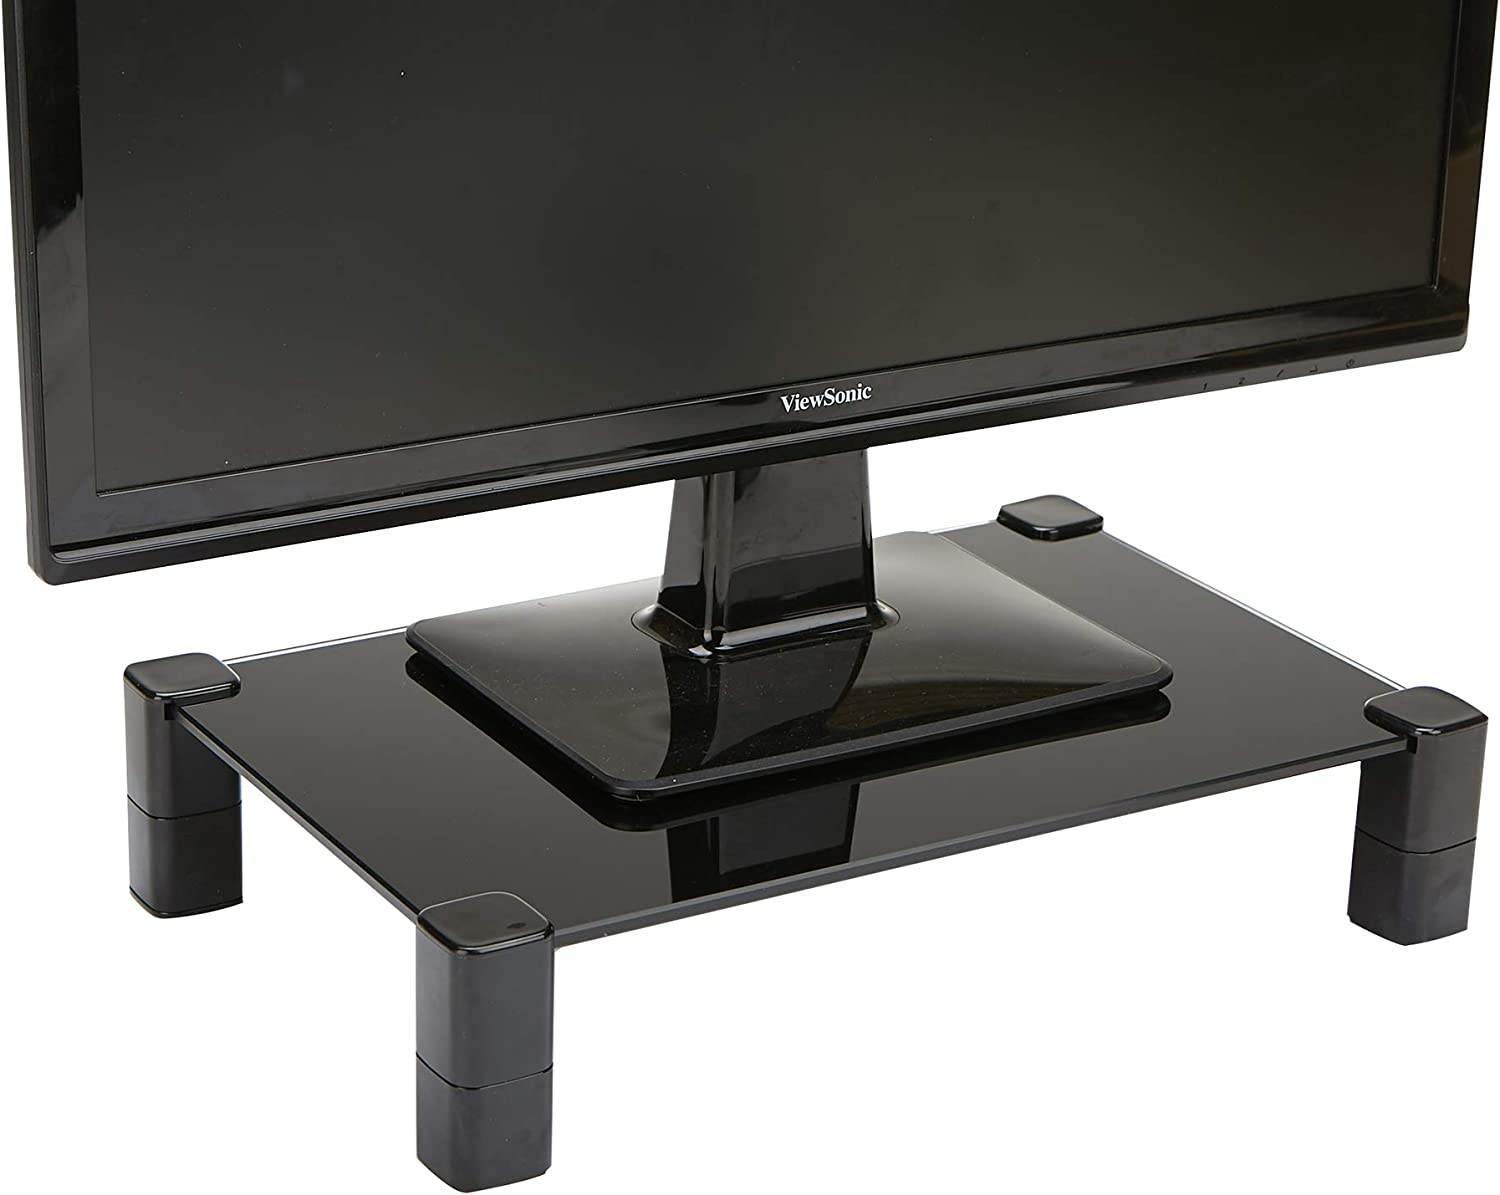 Mind Reader 4LEGLASS-BLK 4 Leg, Desktop Monitor Riser for Computer, Laptop, Desk, iMac, Dell, HP, Black Glass Stand